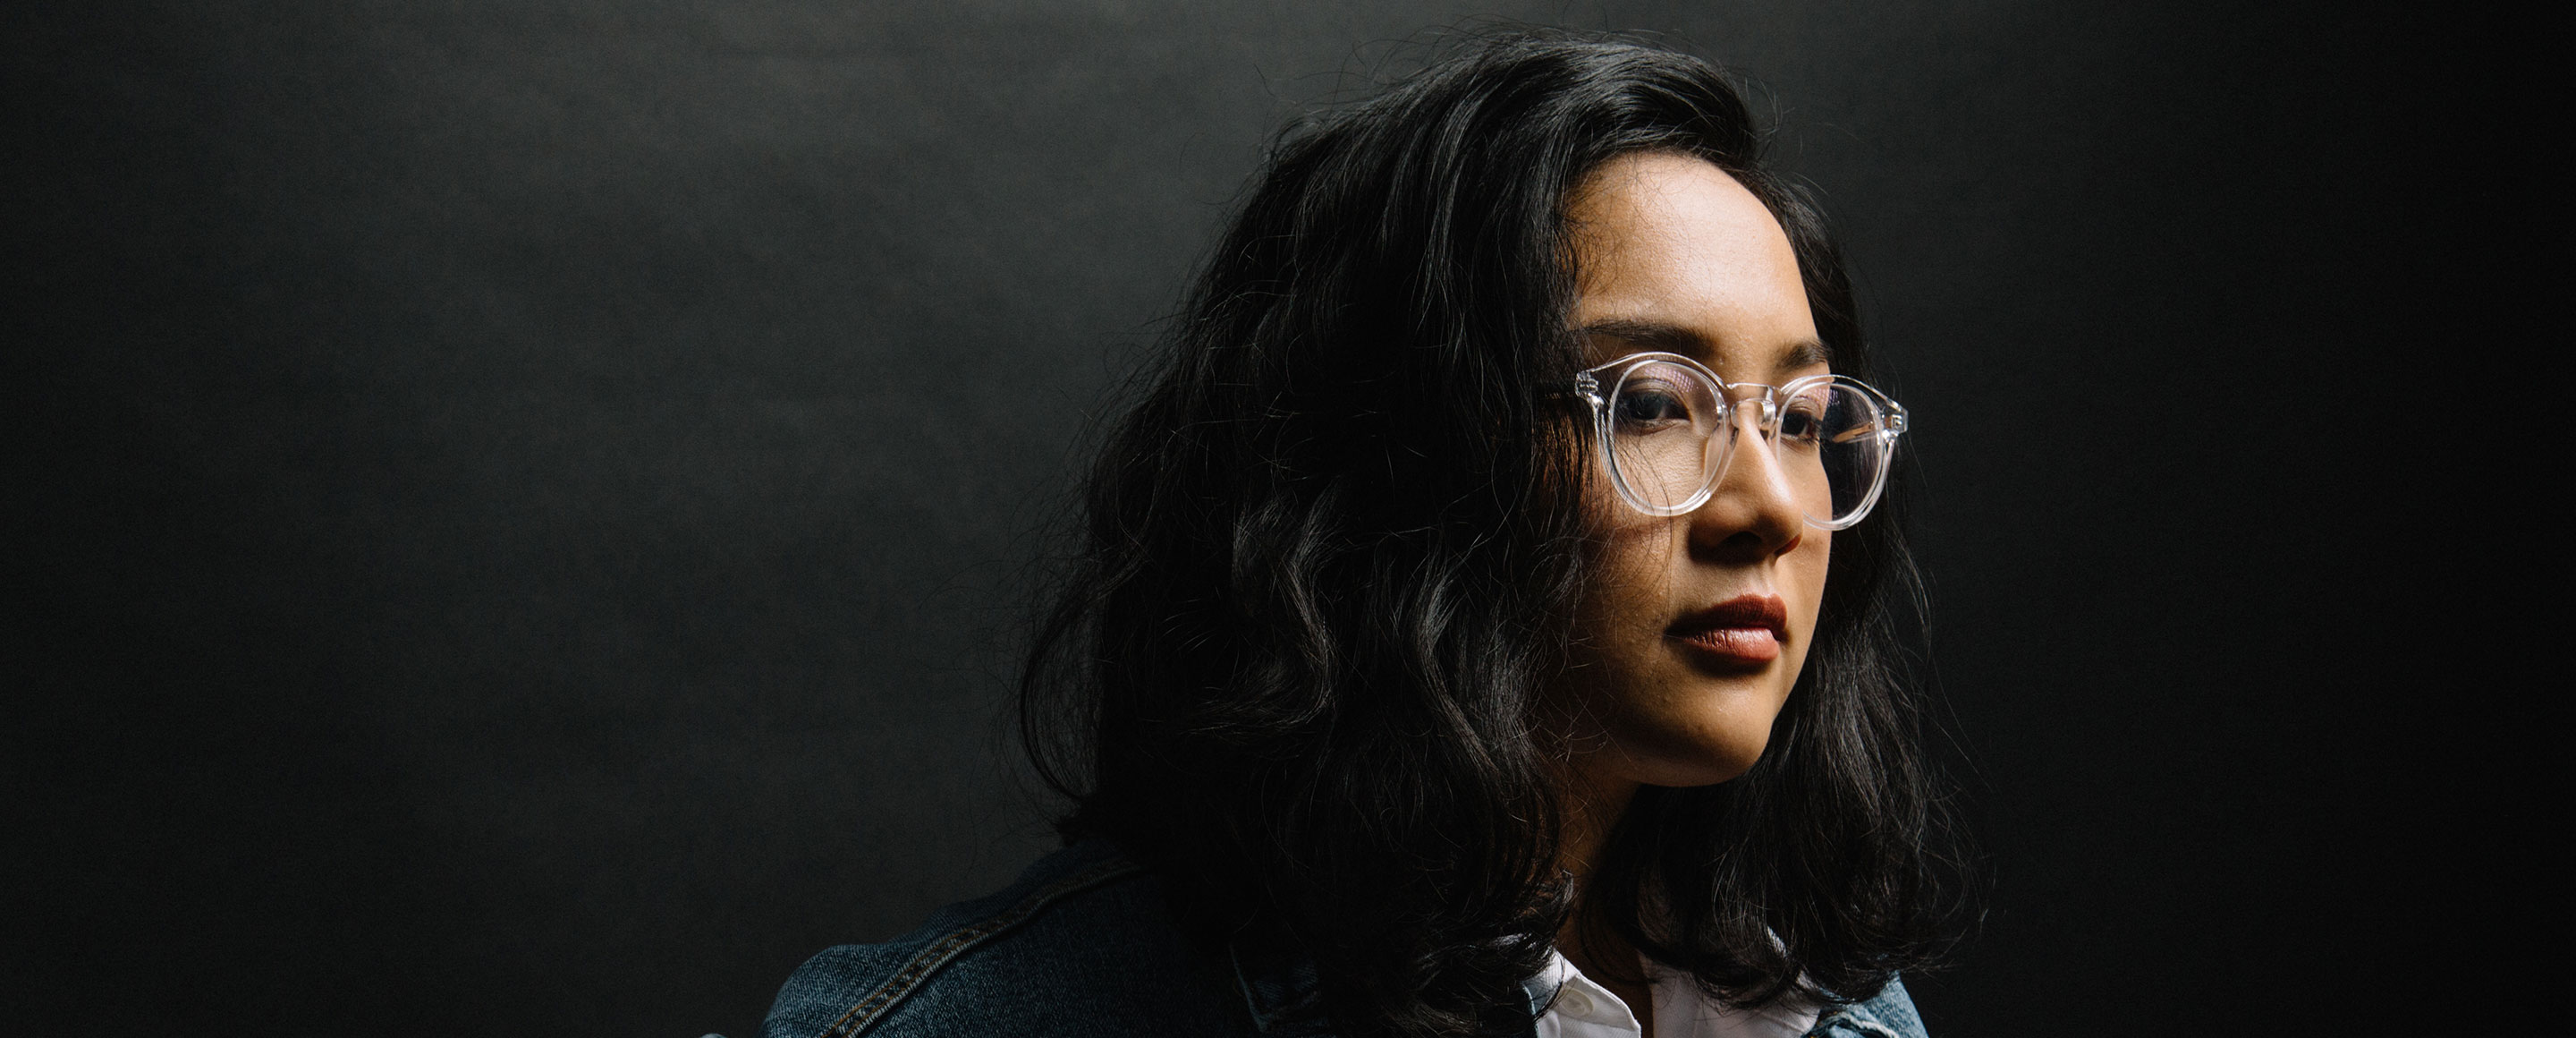 Get to Know Panorama 2018: Meet Jay Som, the Cali Native Making Beats in Her Bedroom